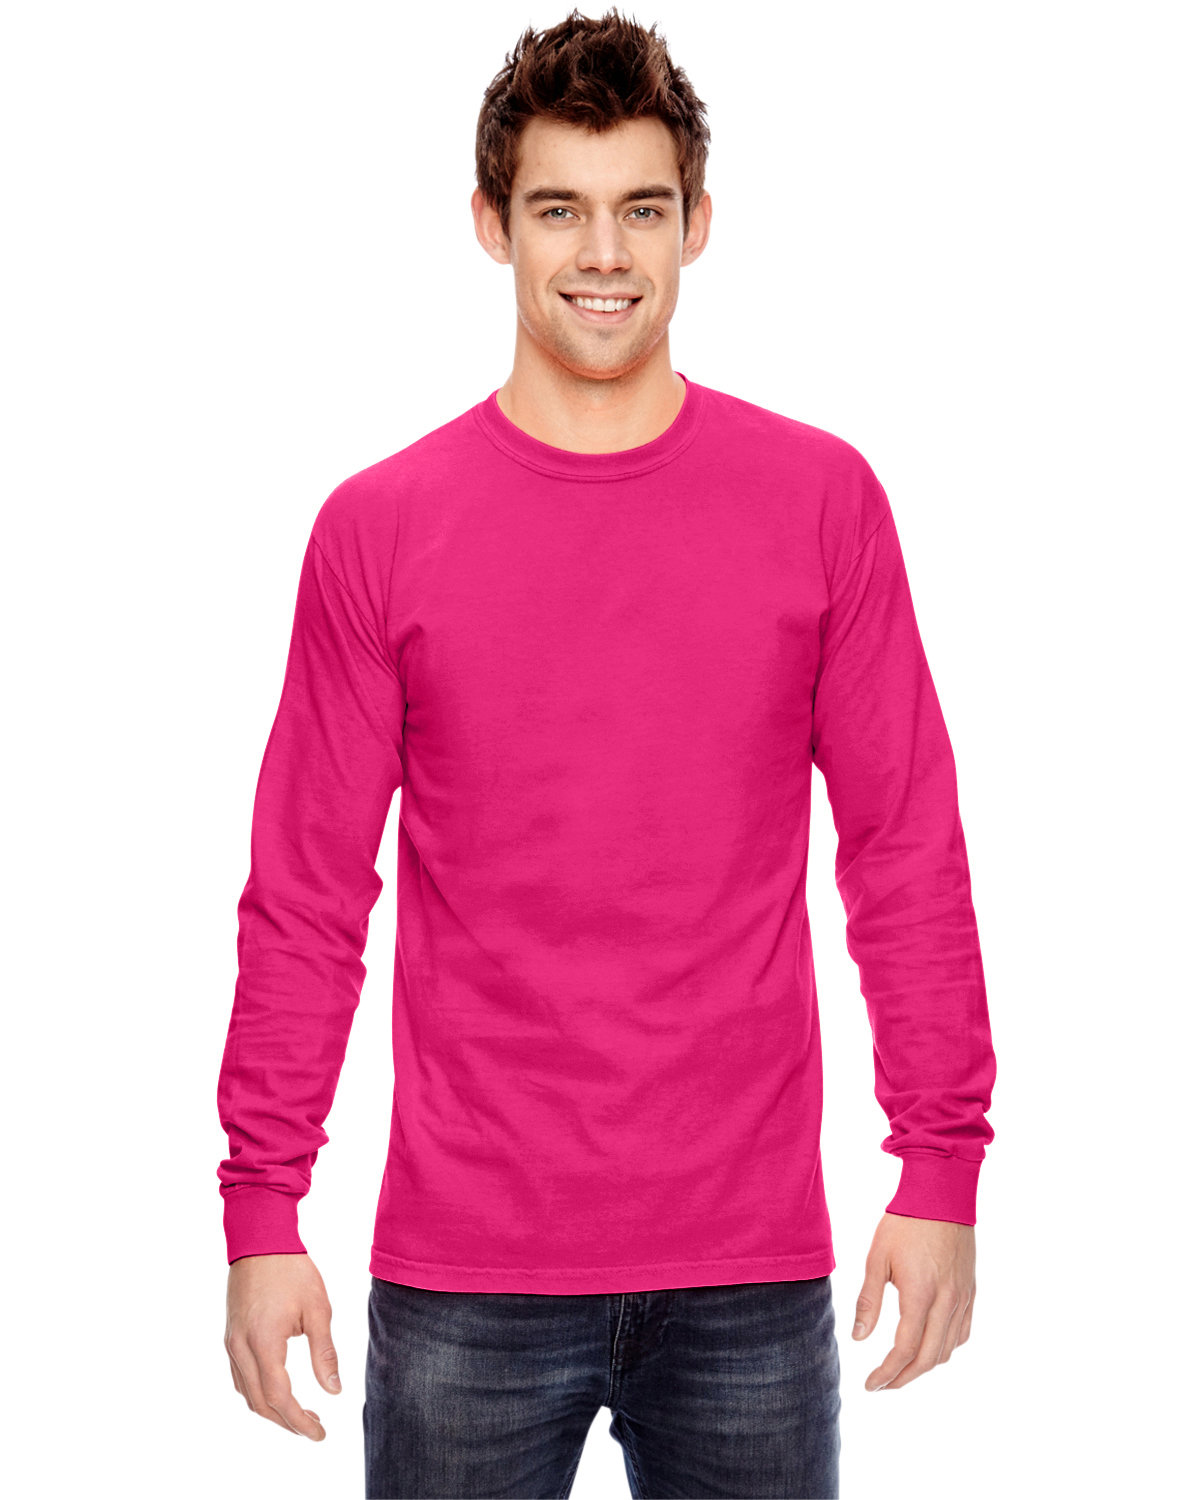 Comfort Colors Adult Heavyweight Long-Sleeve T-Shirt HELICONIA